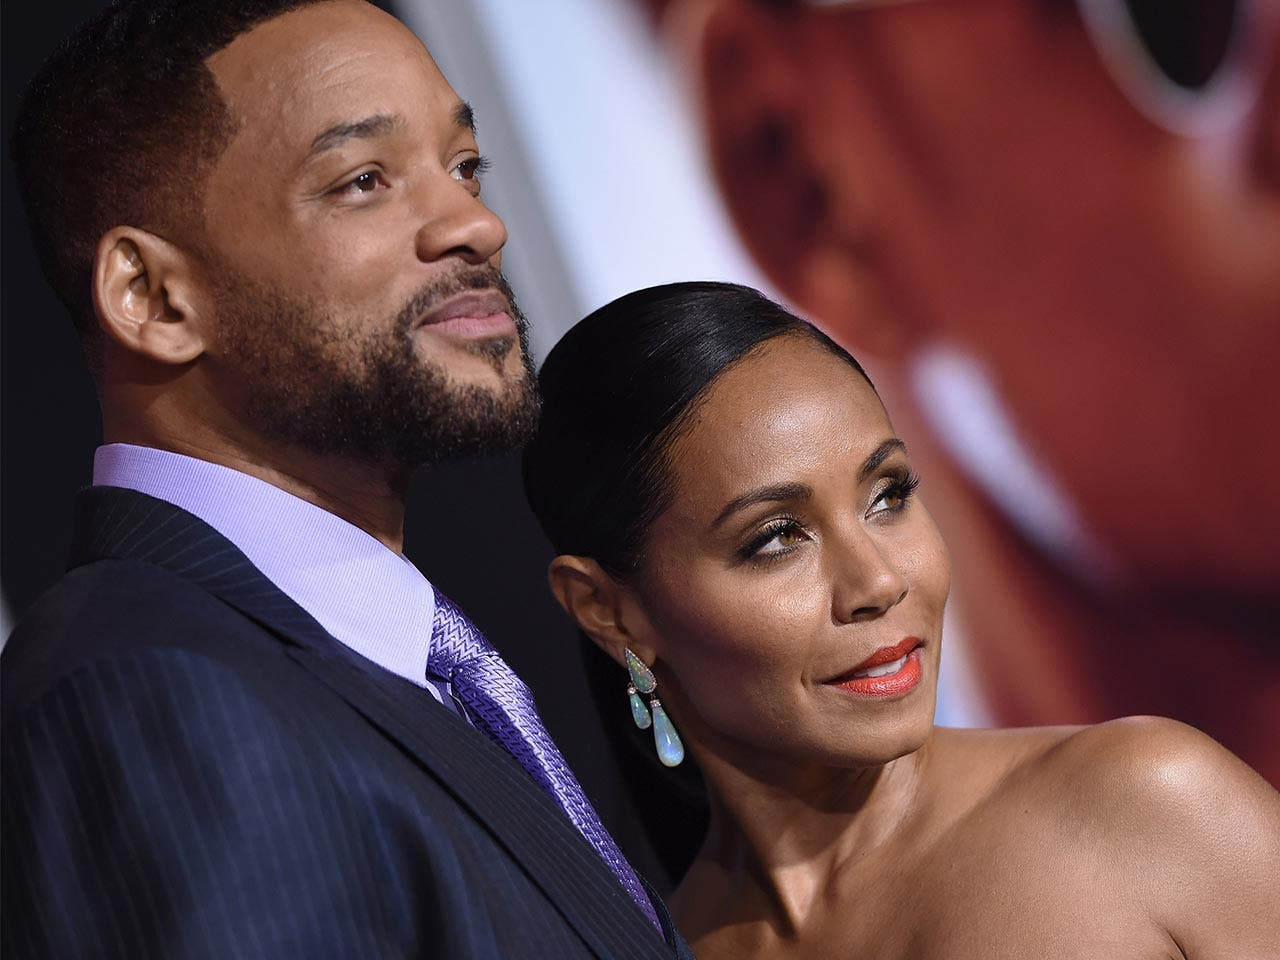 Will Smith and Jada Pinkett Smith | Axelle/Bauer-Griffin/Getty Images